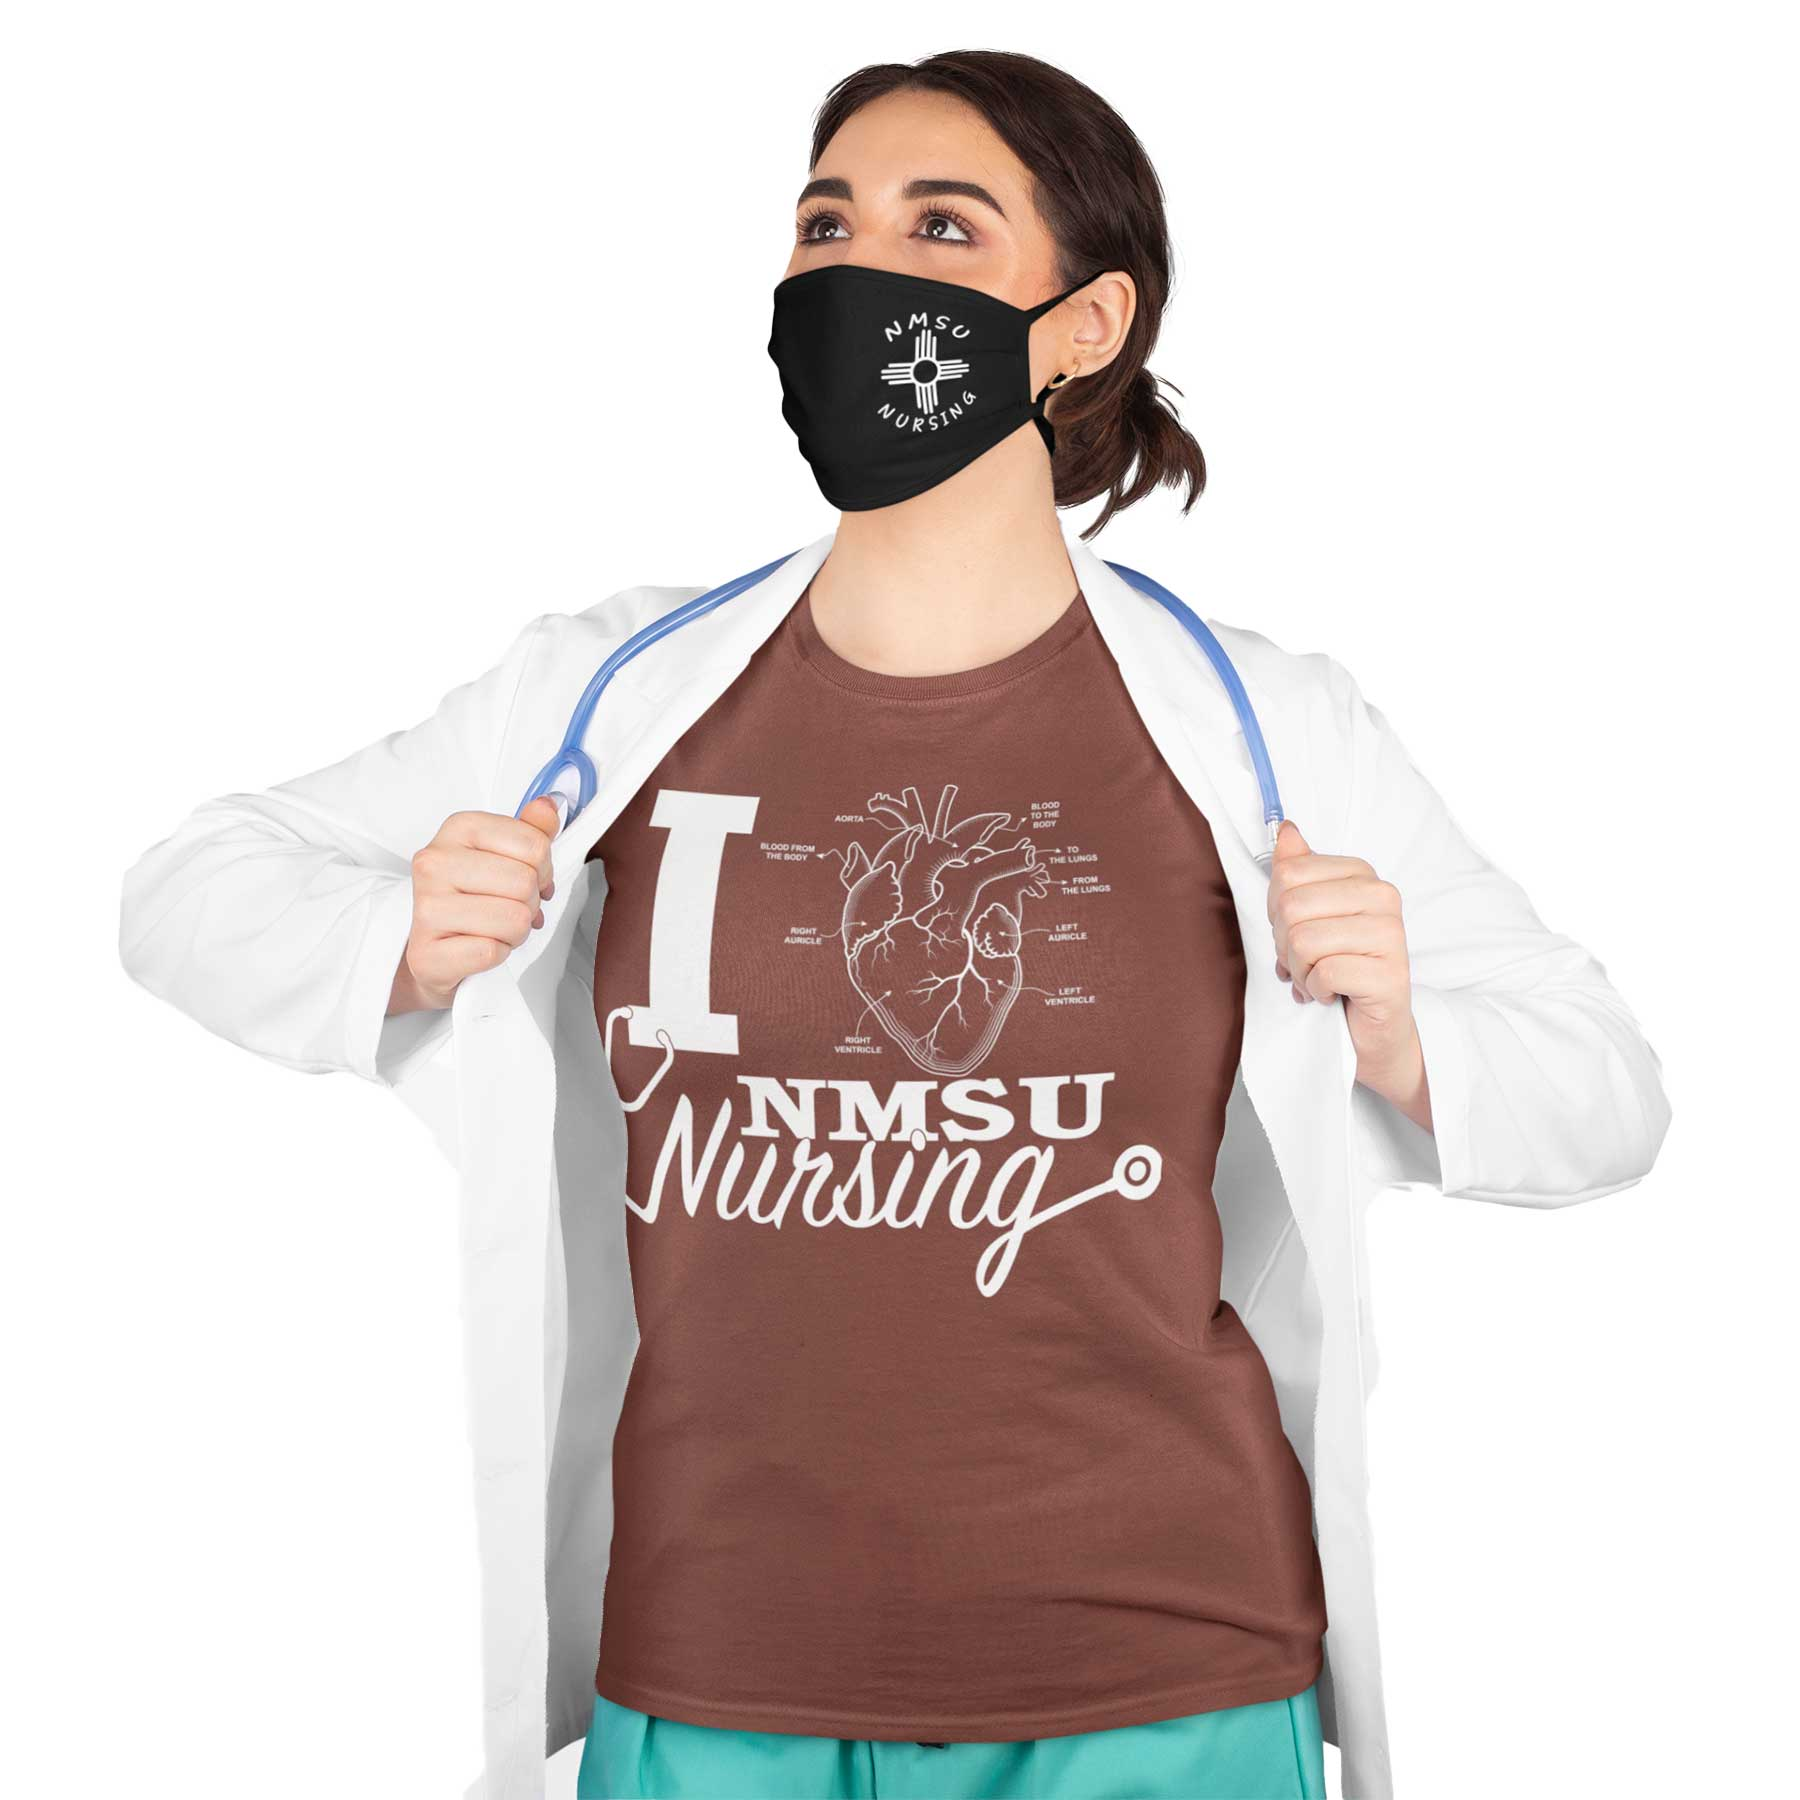 NMSU Nursing Zia Face Mask